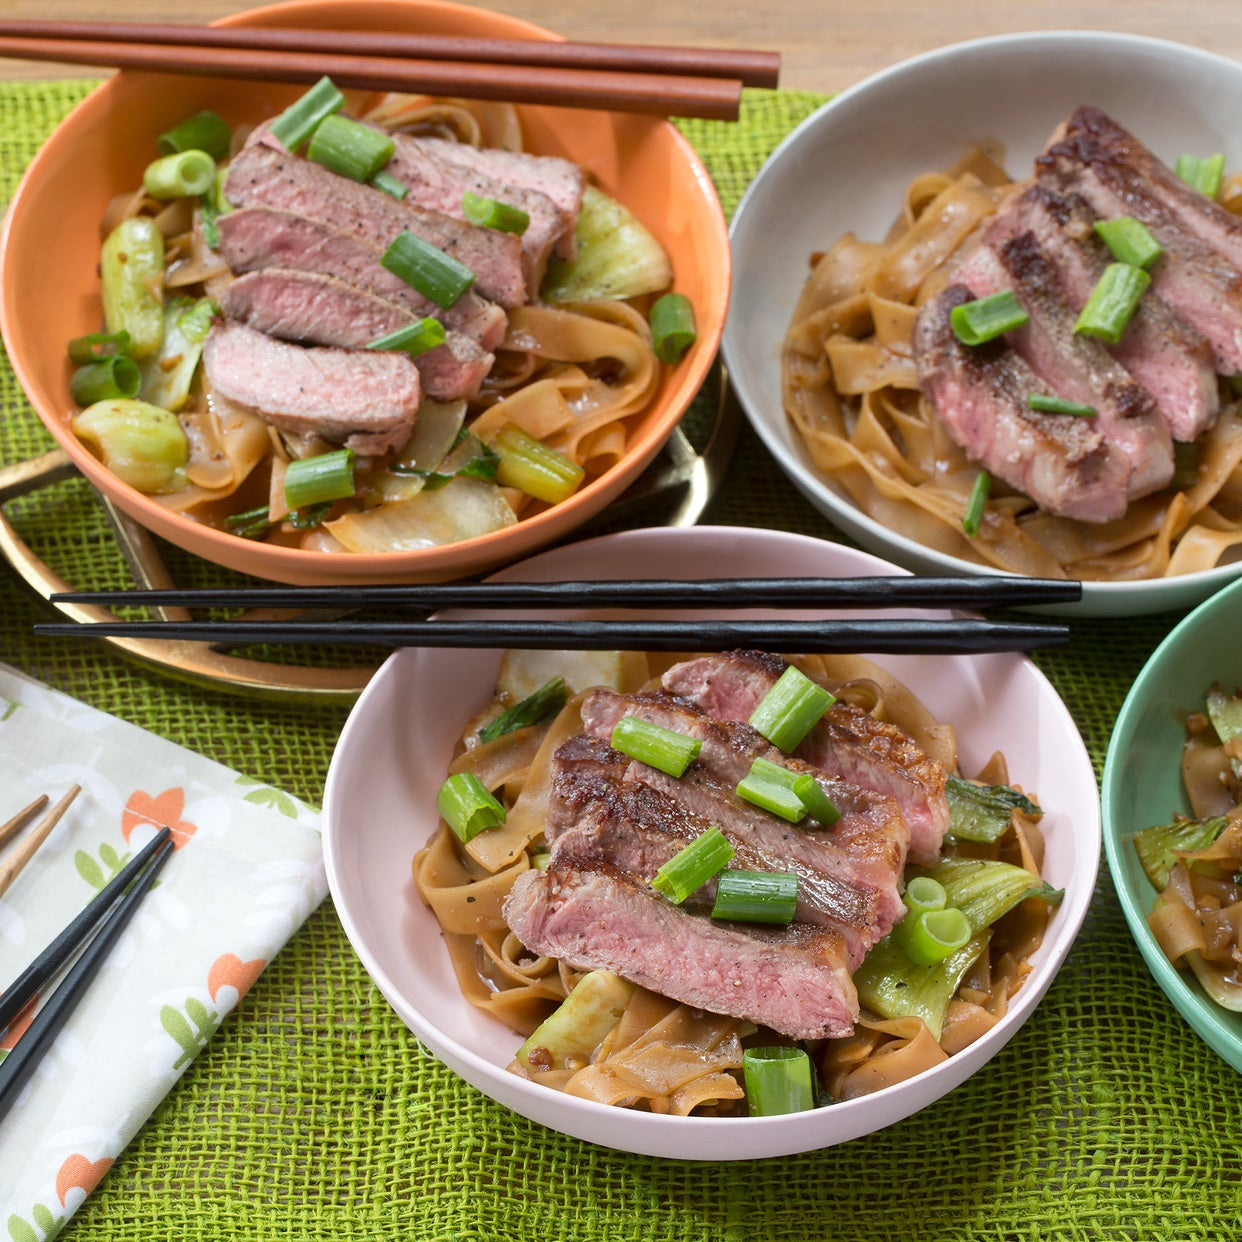 Seared Steaks & Peanut Noodles with Baby Bok Choy